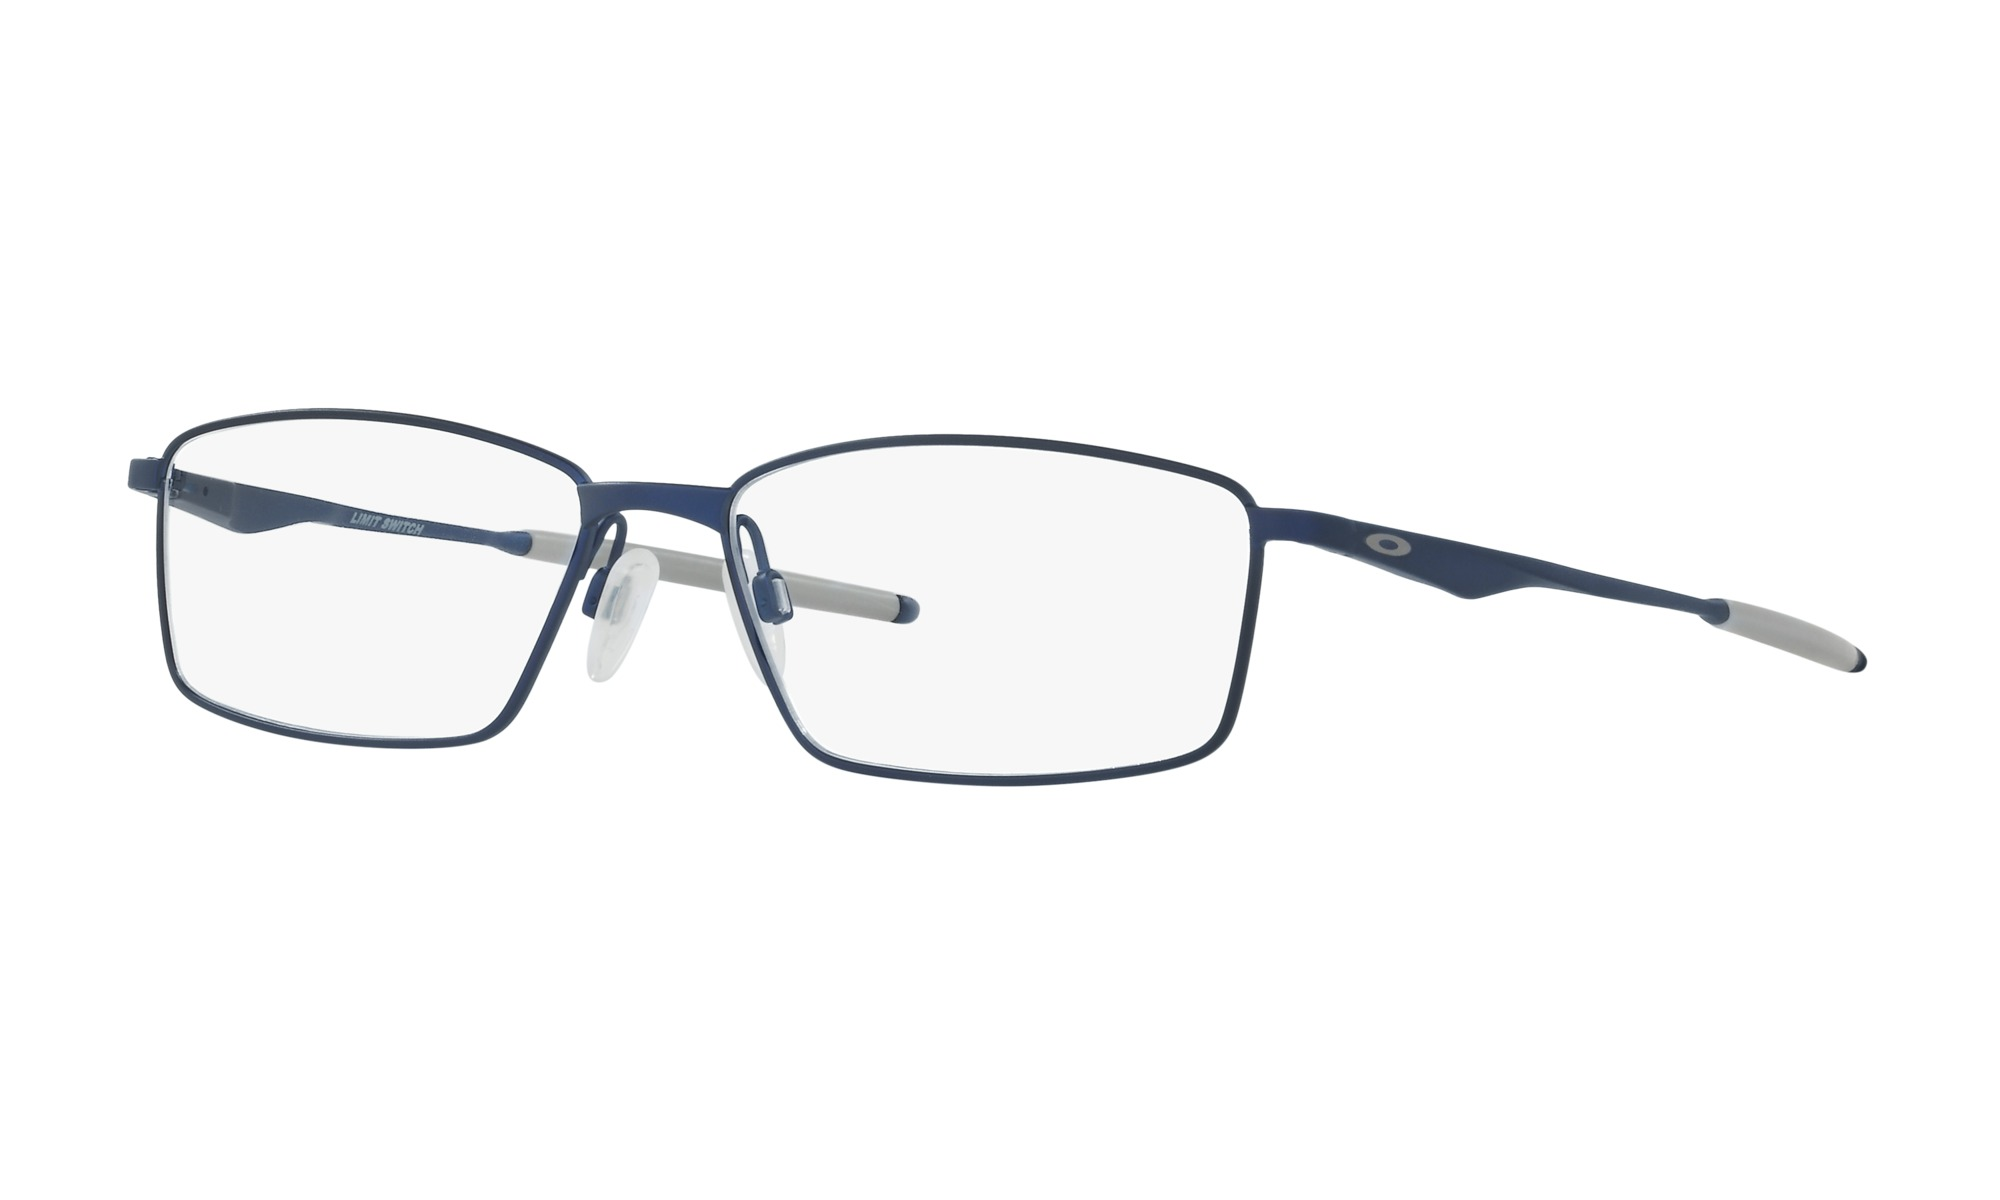 Oakley Model: LIMIT SWITCH 5121, Colour Code: 04, Frame Colour: MIDNIGHT BLUE